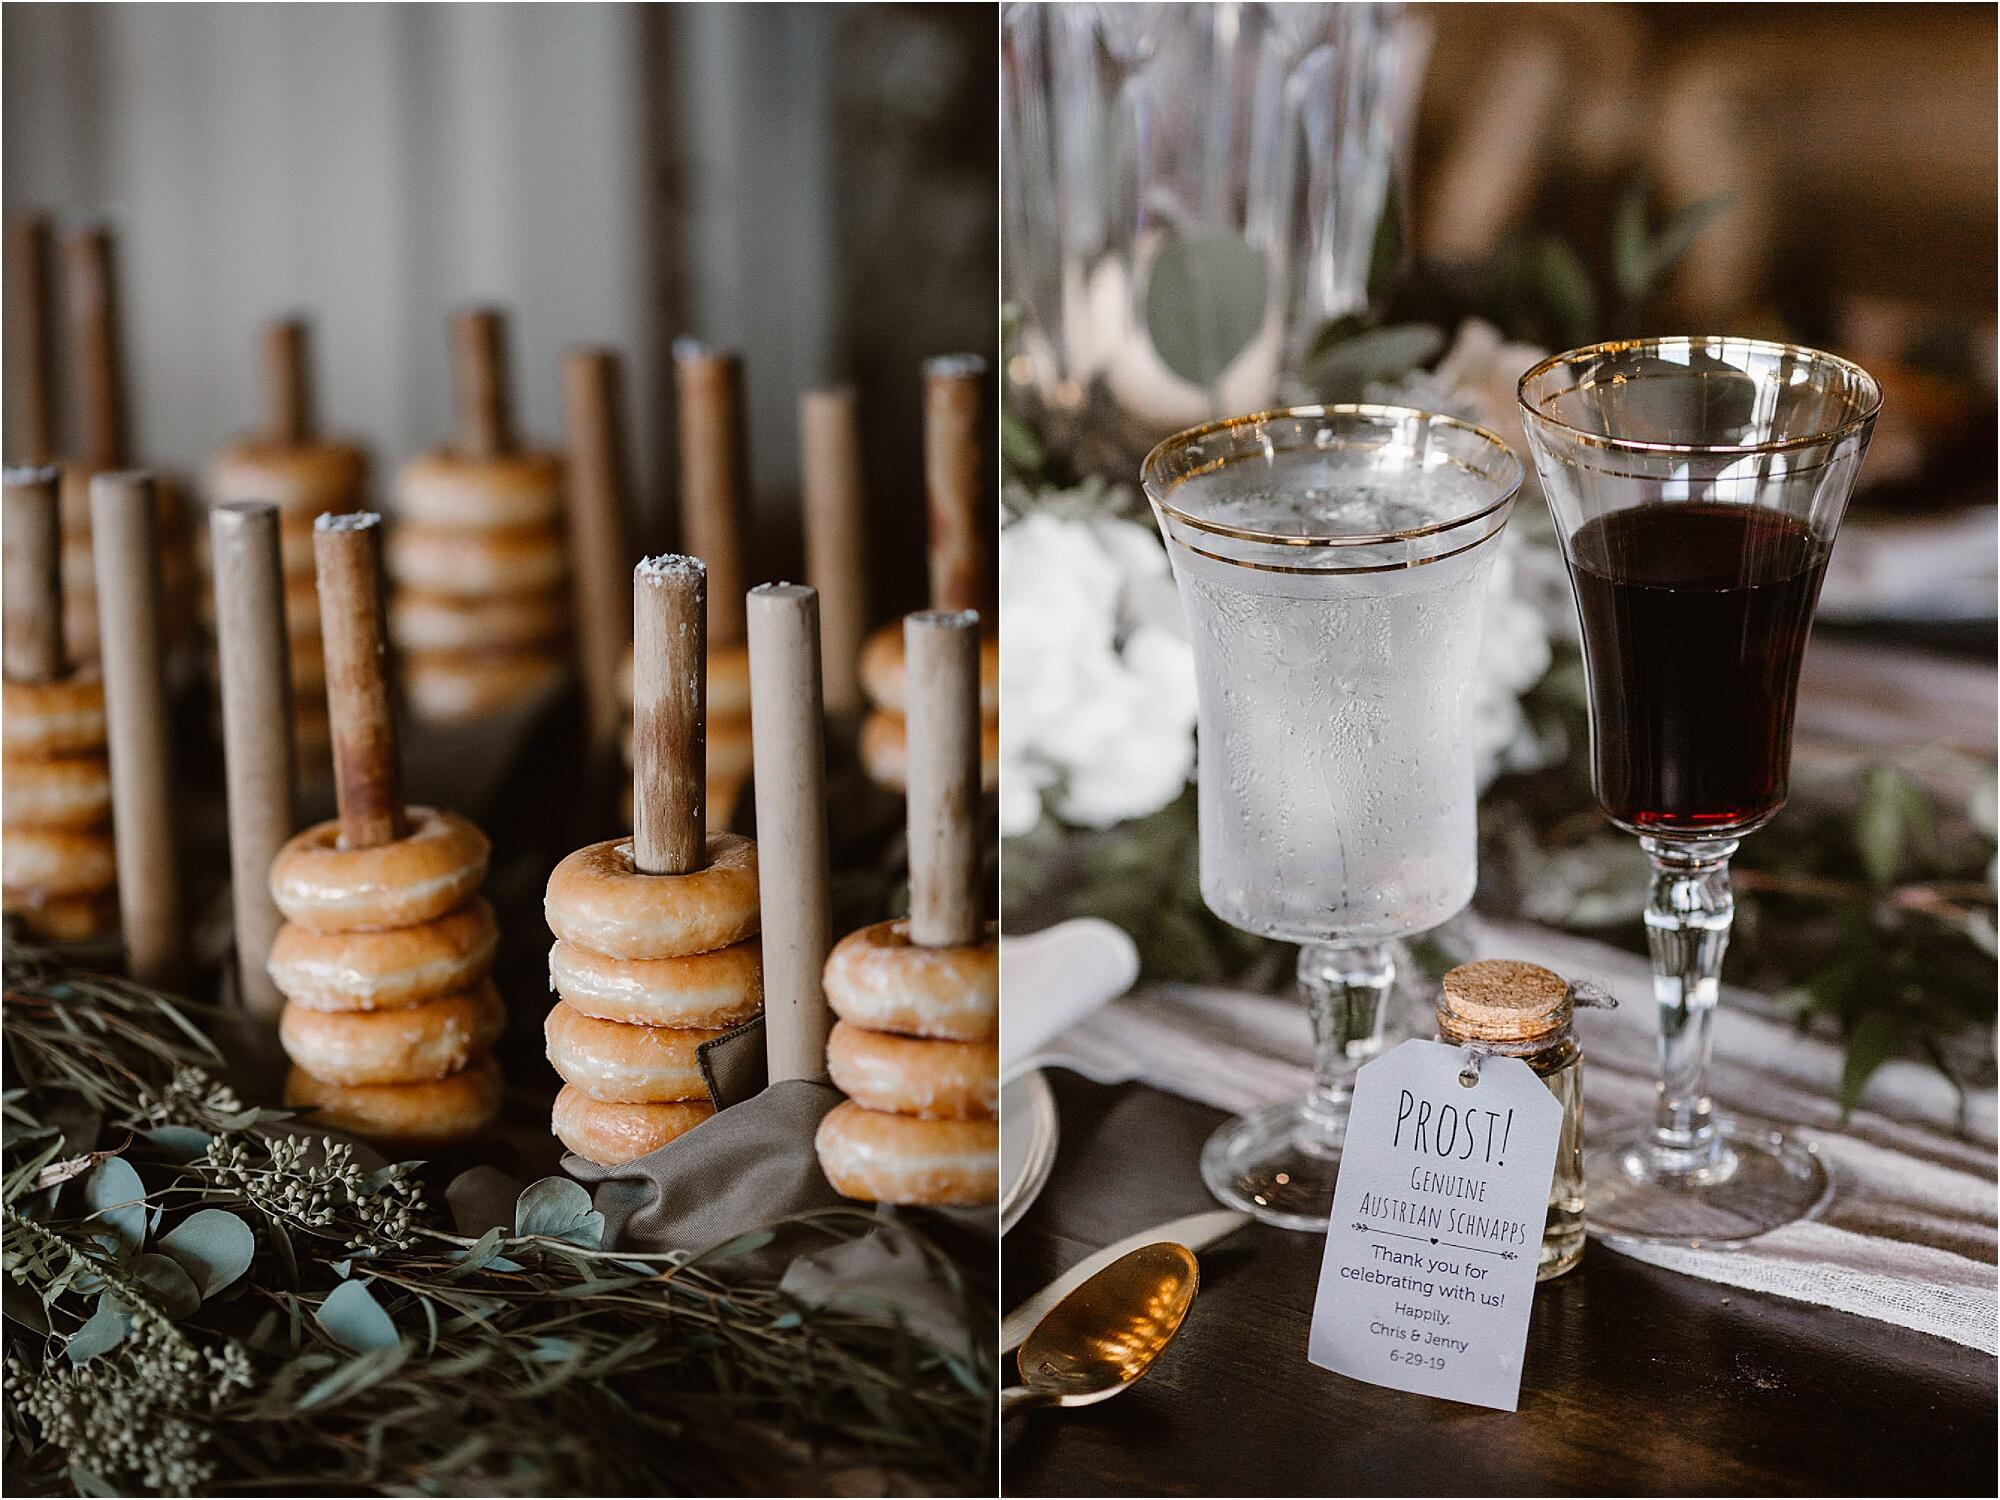 Wedding dessert table detail photos featuring bagels & wine glasses